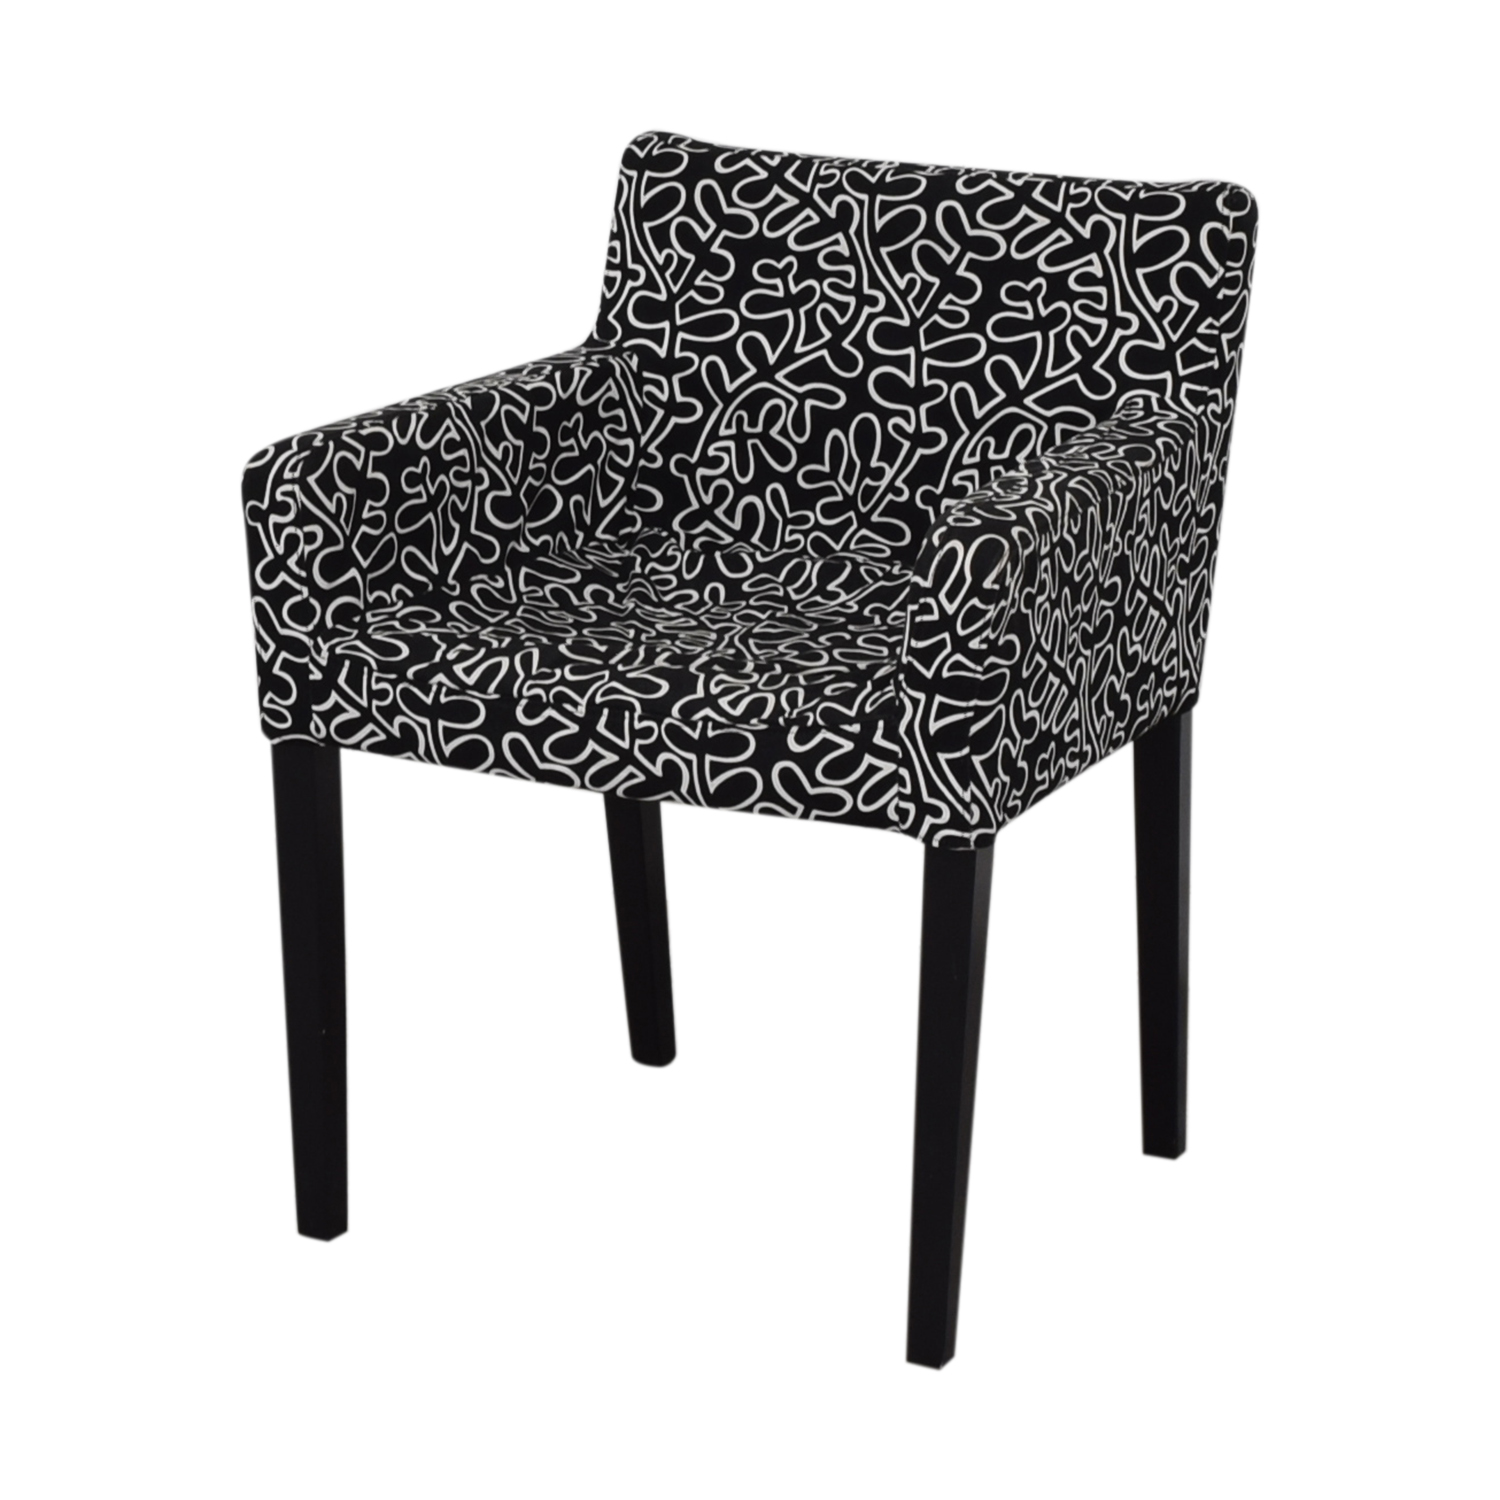 Black and White Print Chair second hand